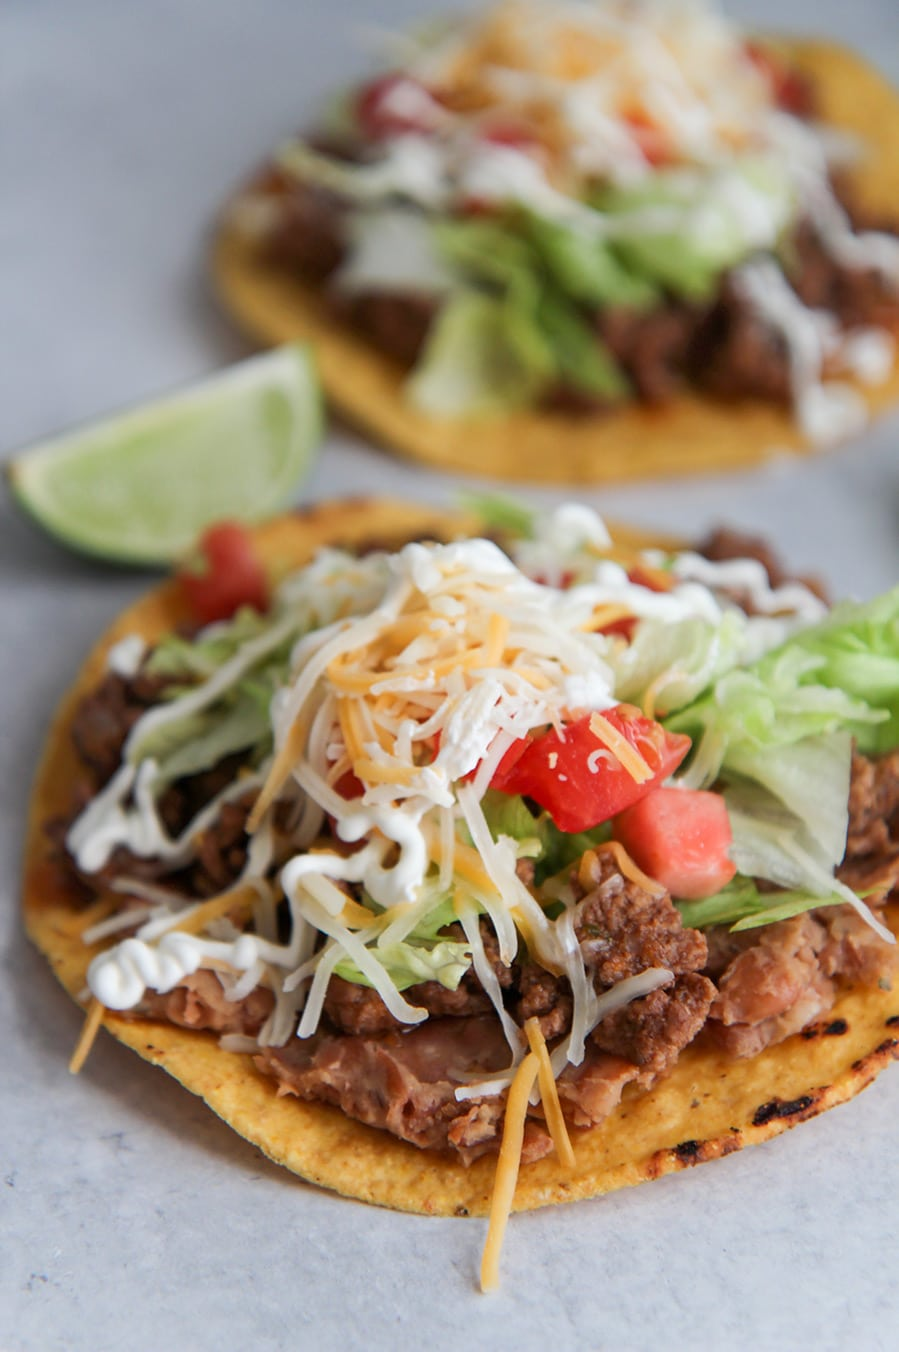 two beef tostadas with refried beans, lettuce, tomatoes, cheese, sour cream, and limes on the side.